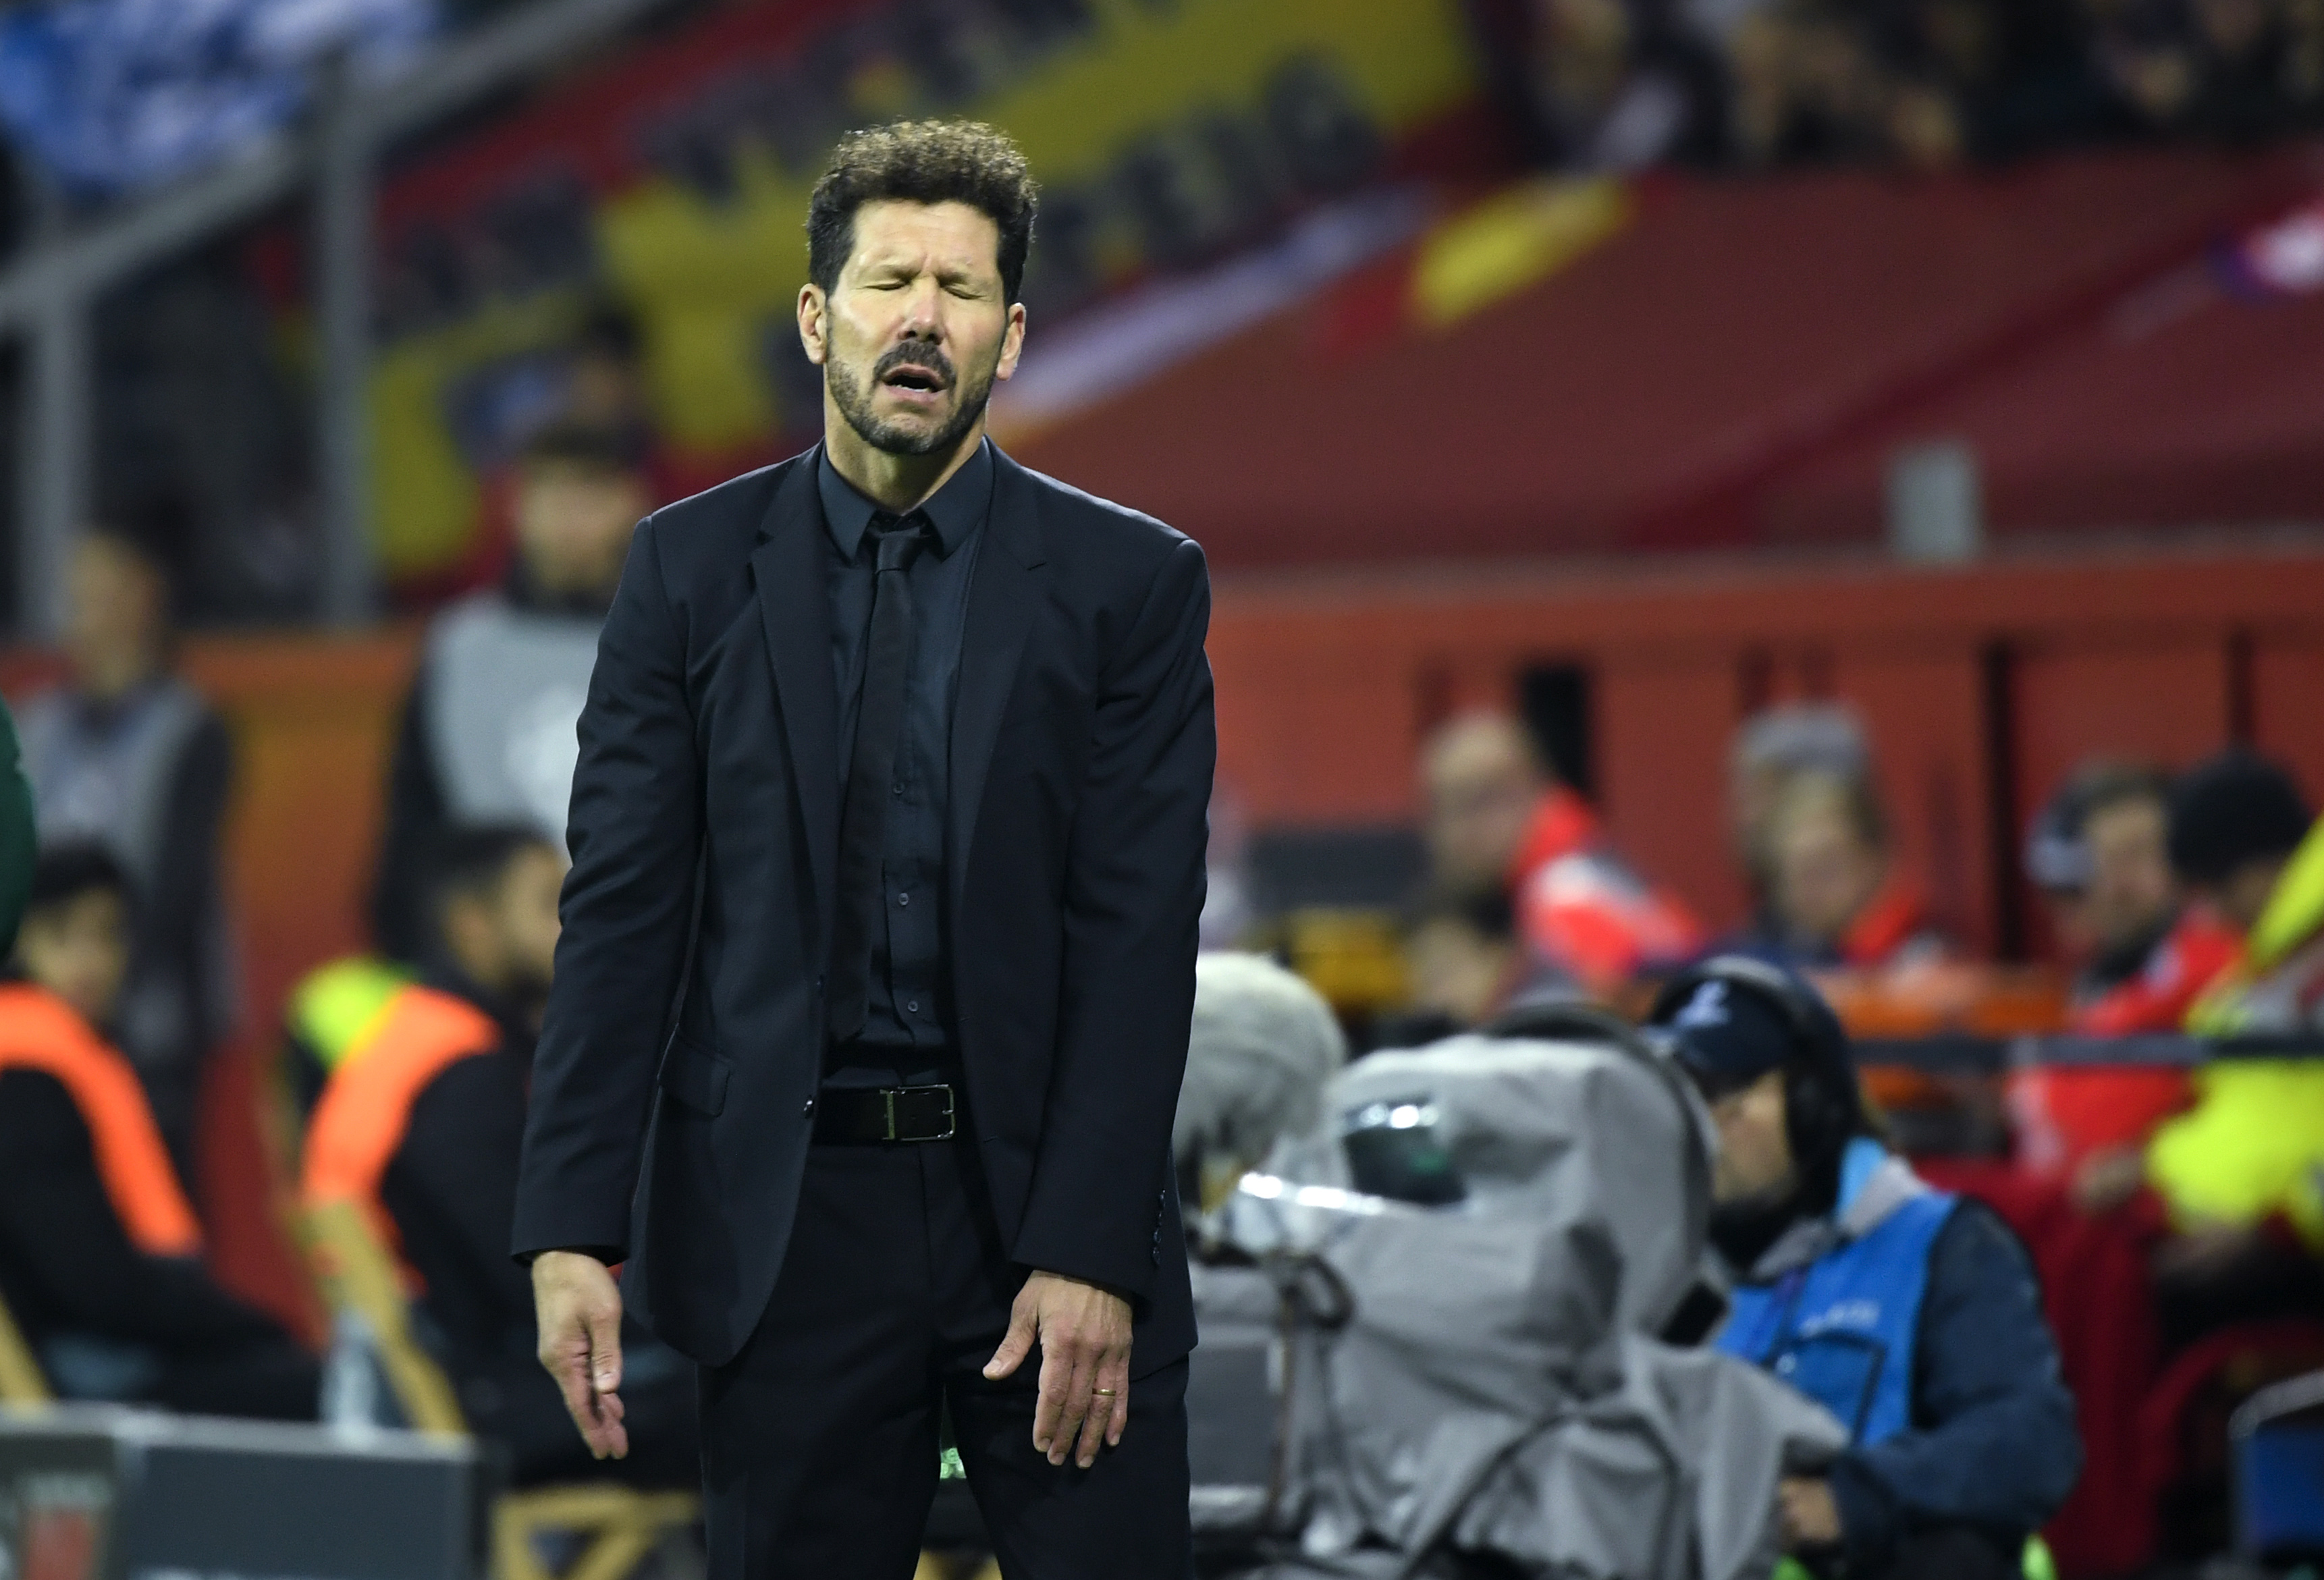 Diego Simeone was far from pleased with what he saw from Atletico.